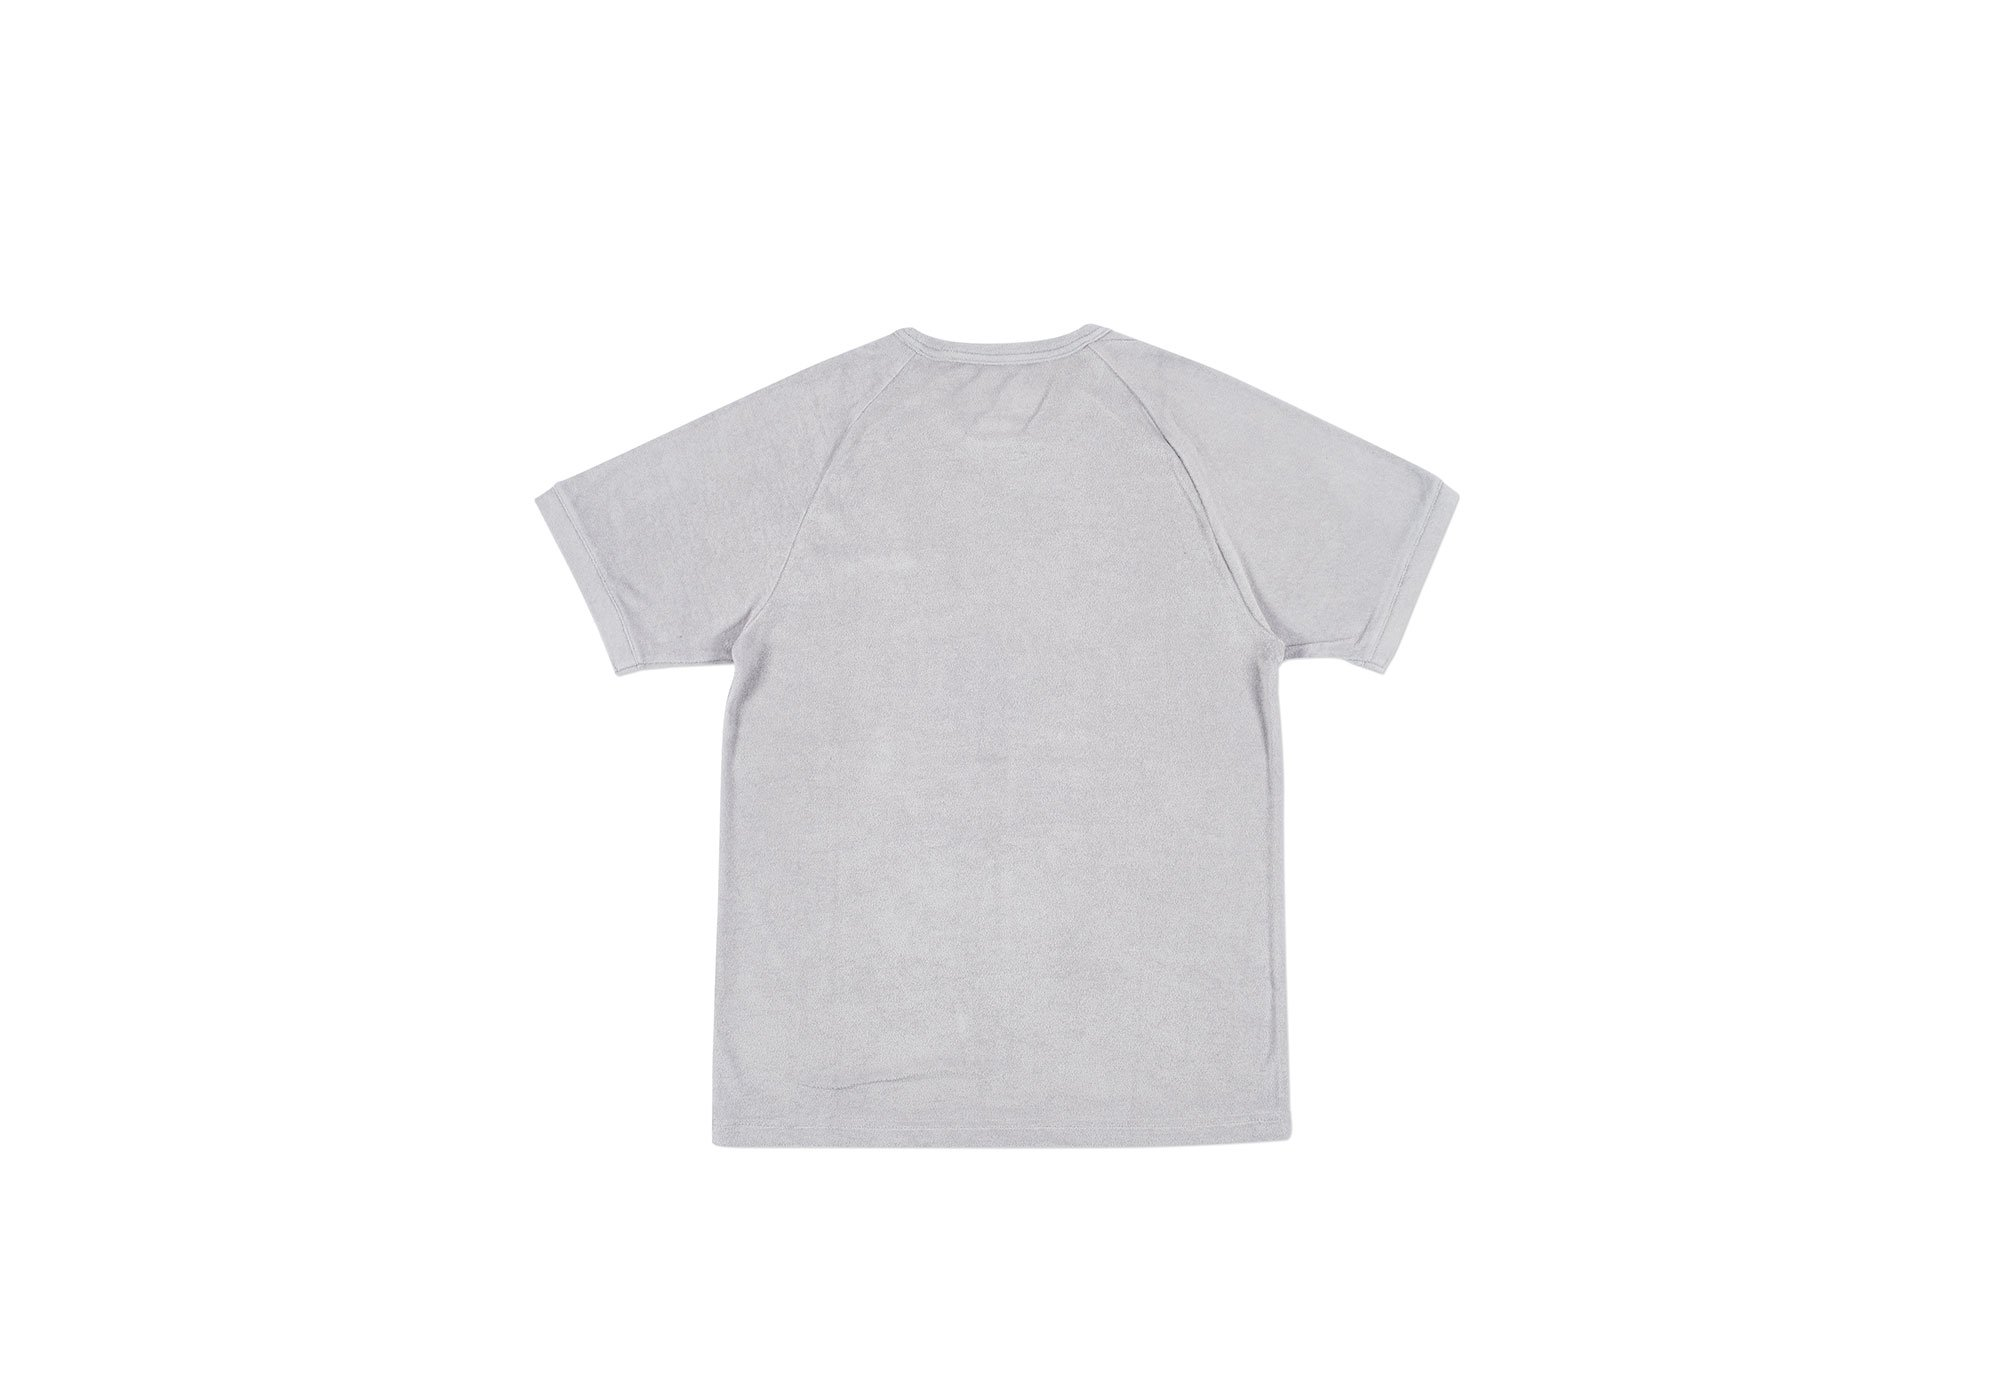 Adidas T Palace Terry Shirt Ss18 Grey 61xqd0wq